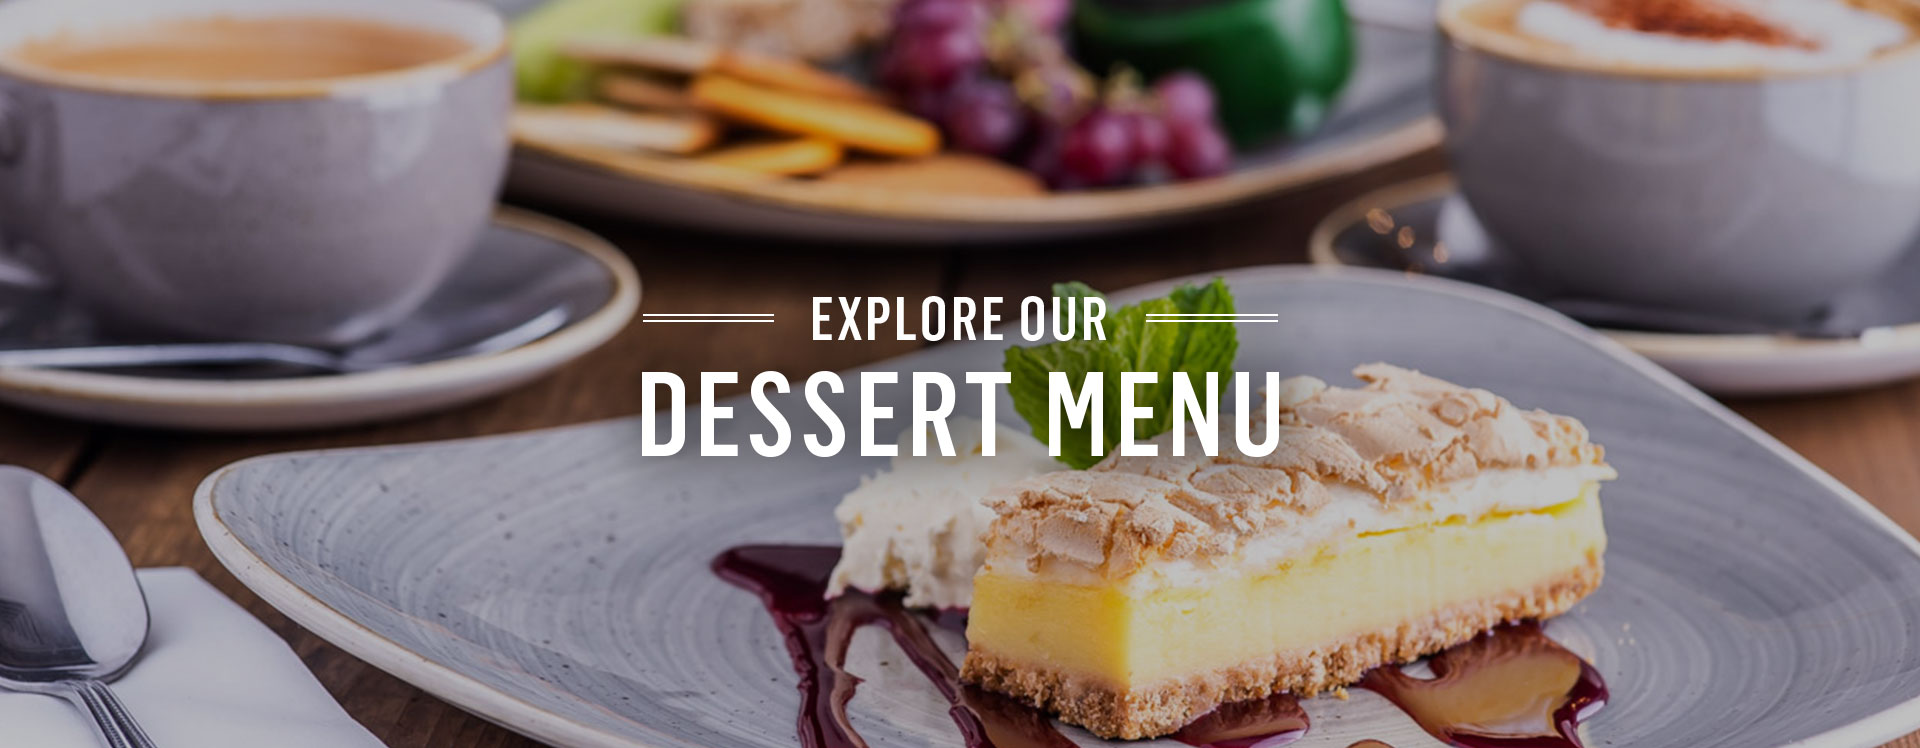 Dessert menu at The Walrus and The Carpenter - Book a table